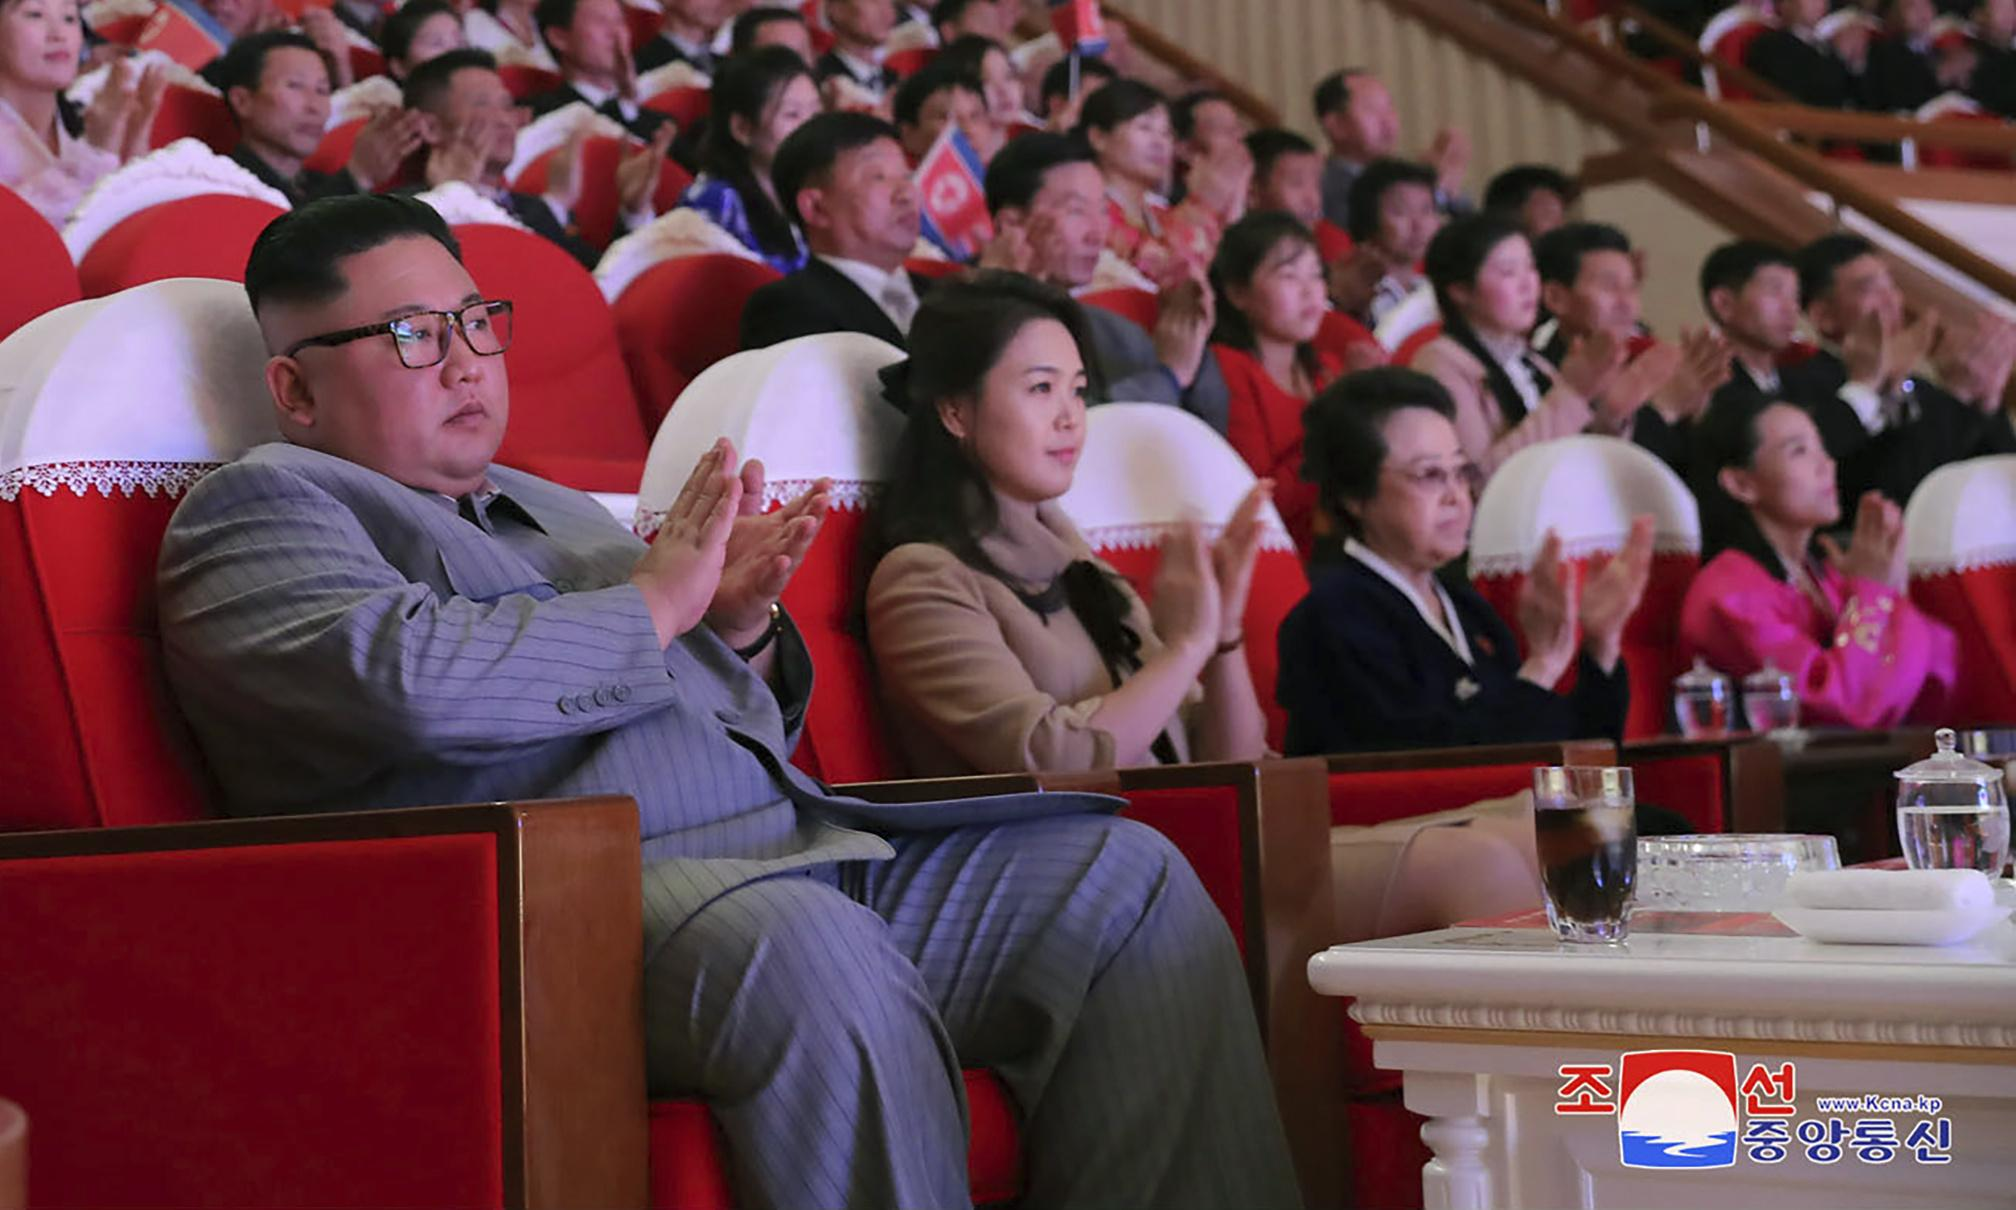 Kim Jong-un's aunt reappears, six years after purge rumours